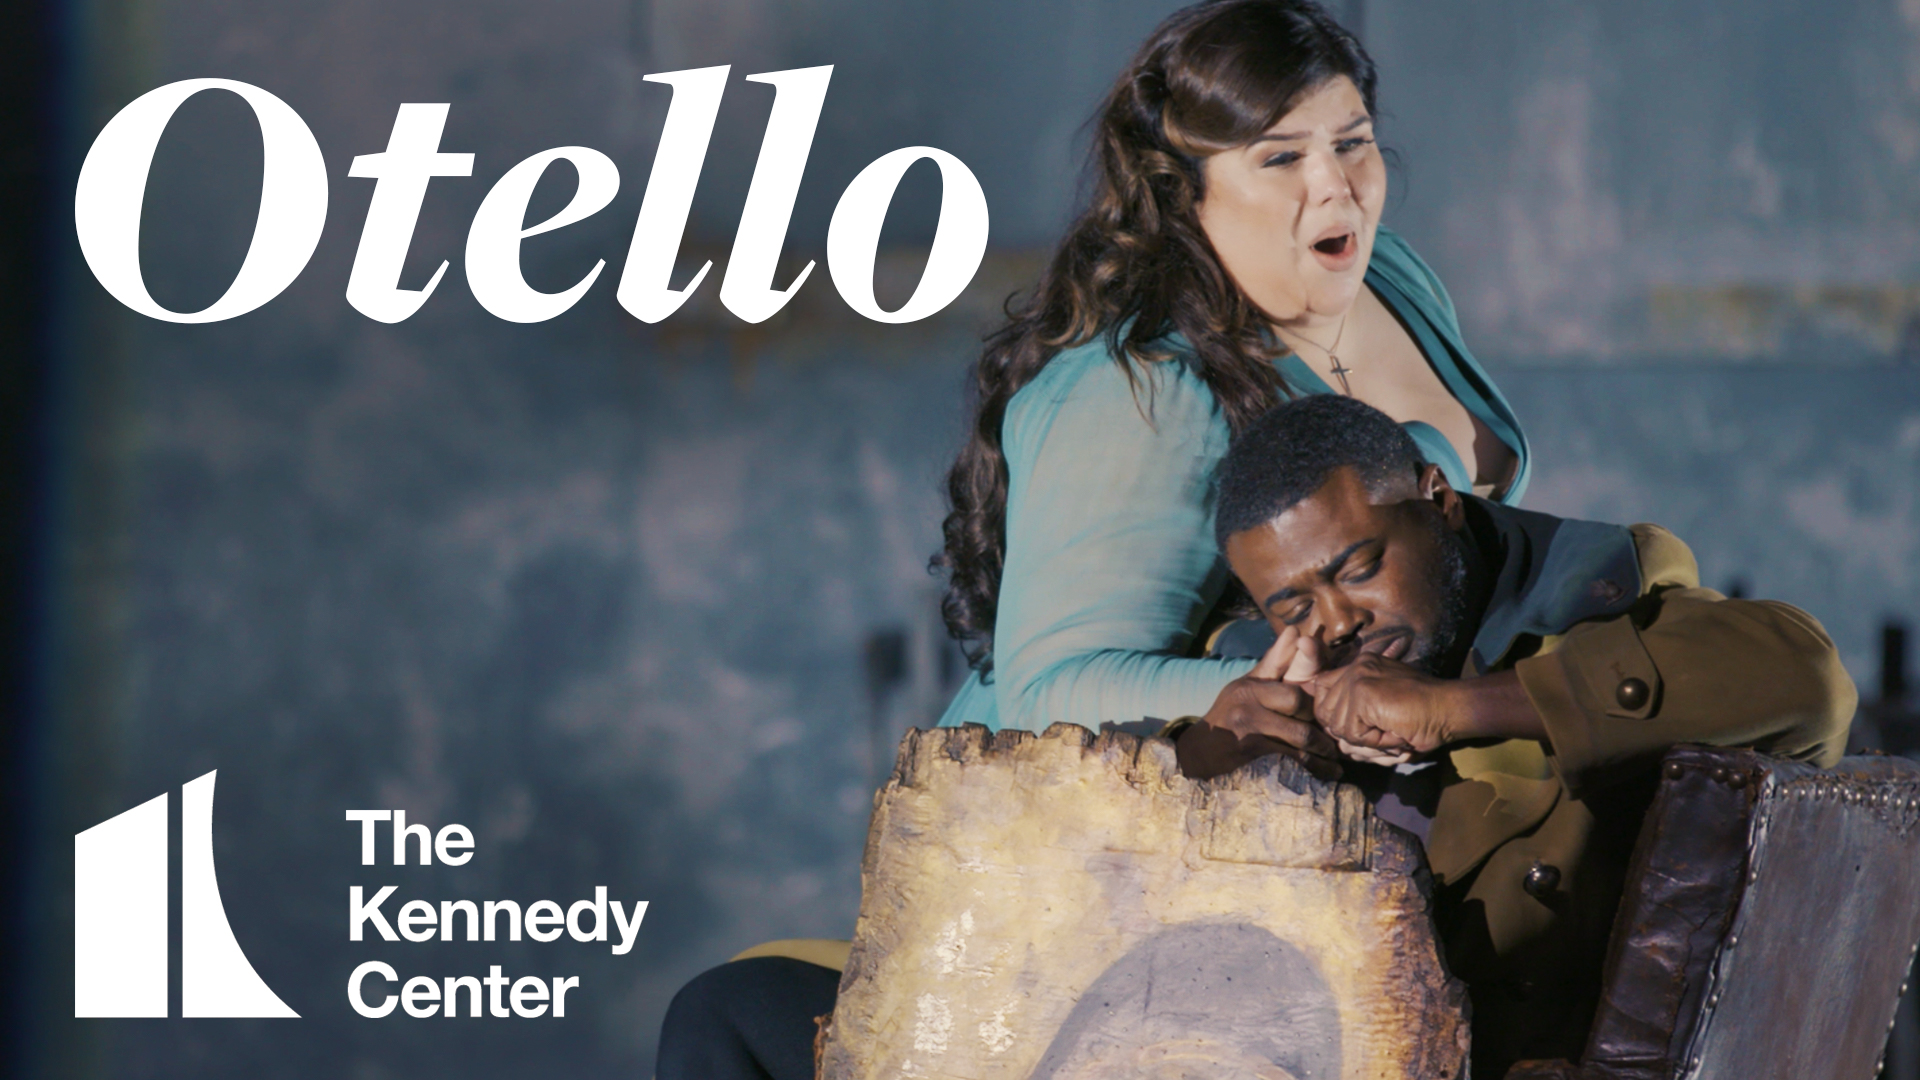 Otello at the Kennedy Center